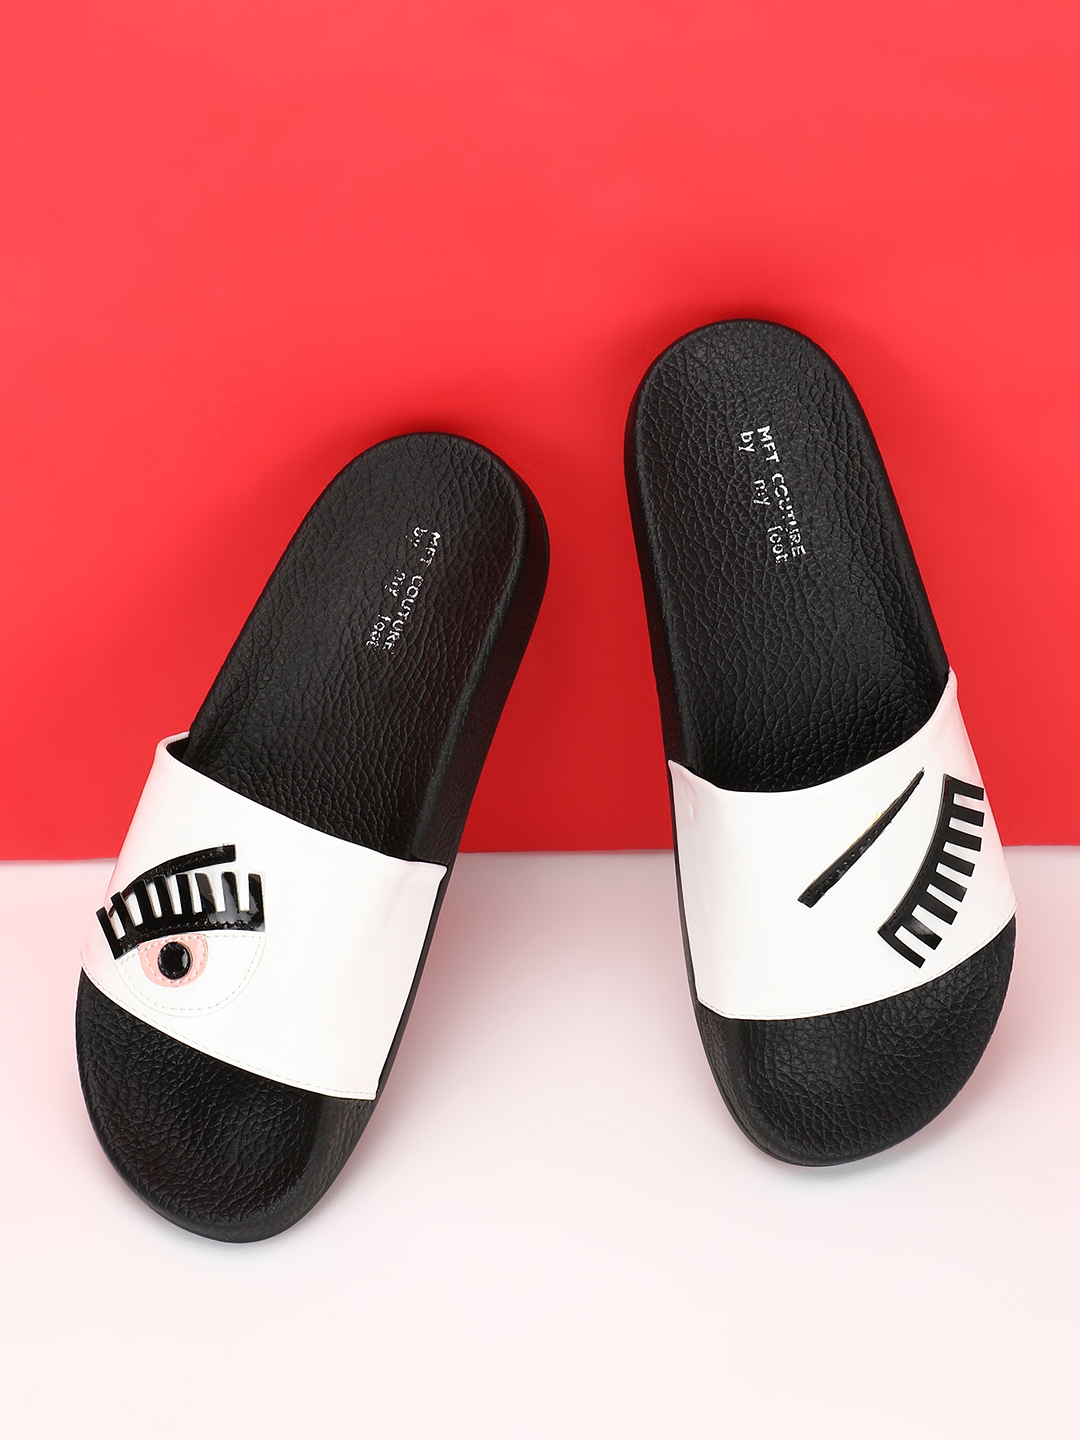 My Foot Couture White Wink Eye Pool Slides 1